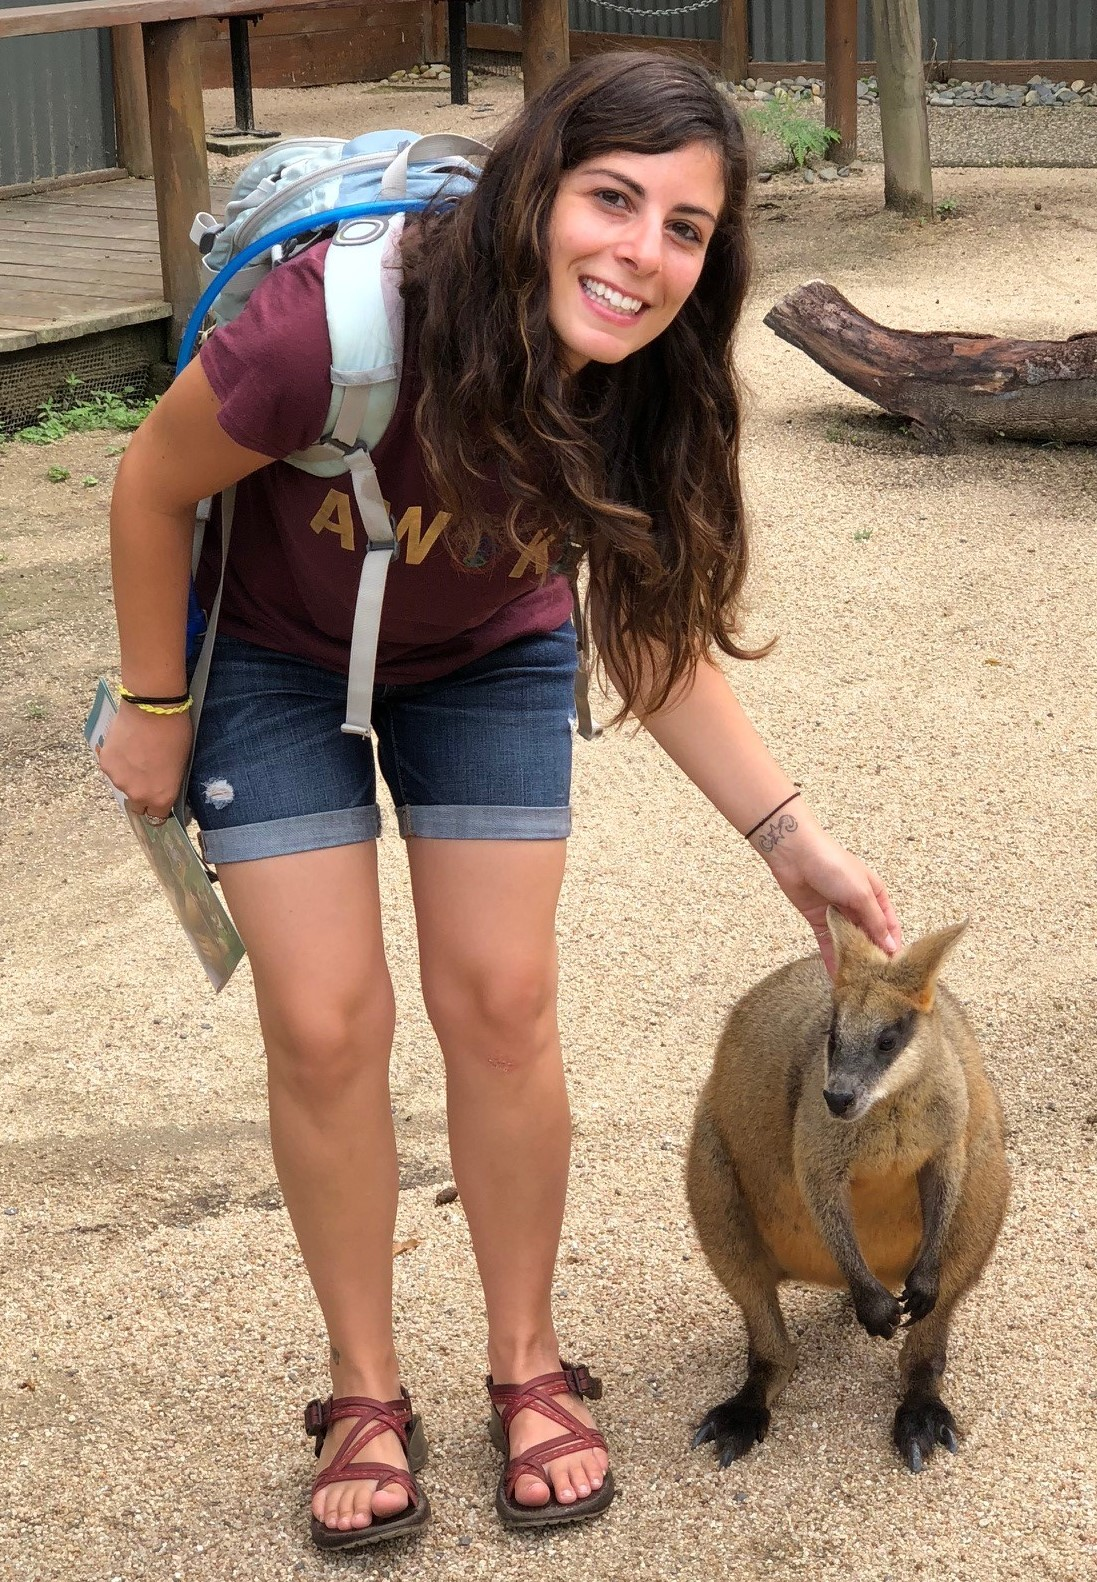 Lizz with wallaby